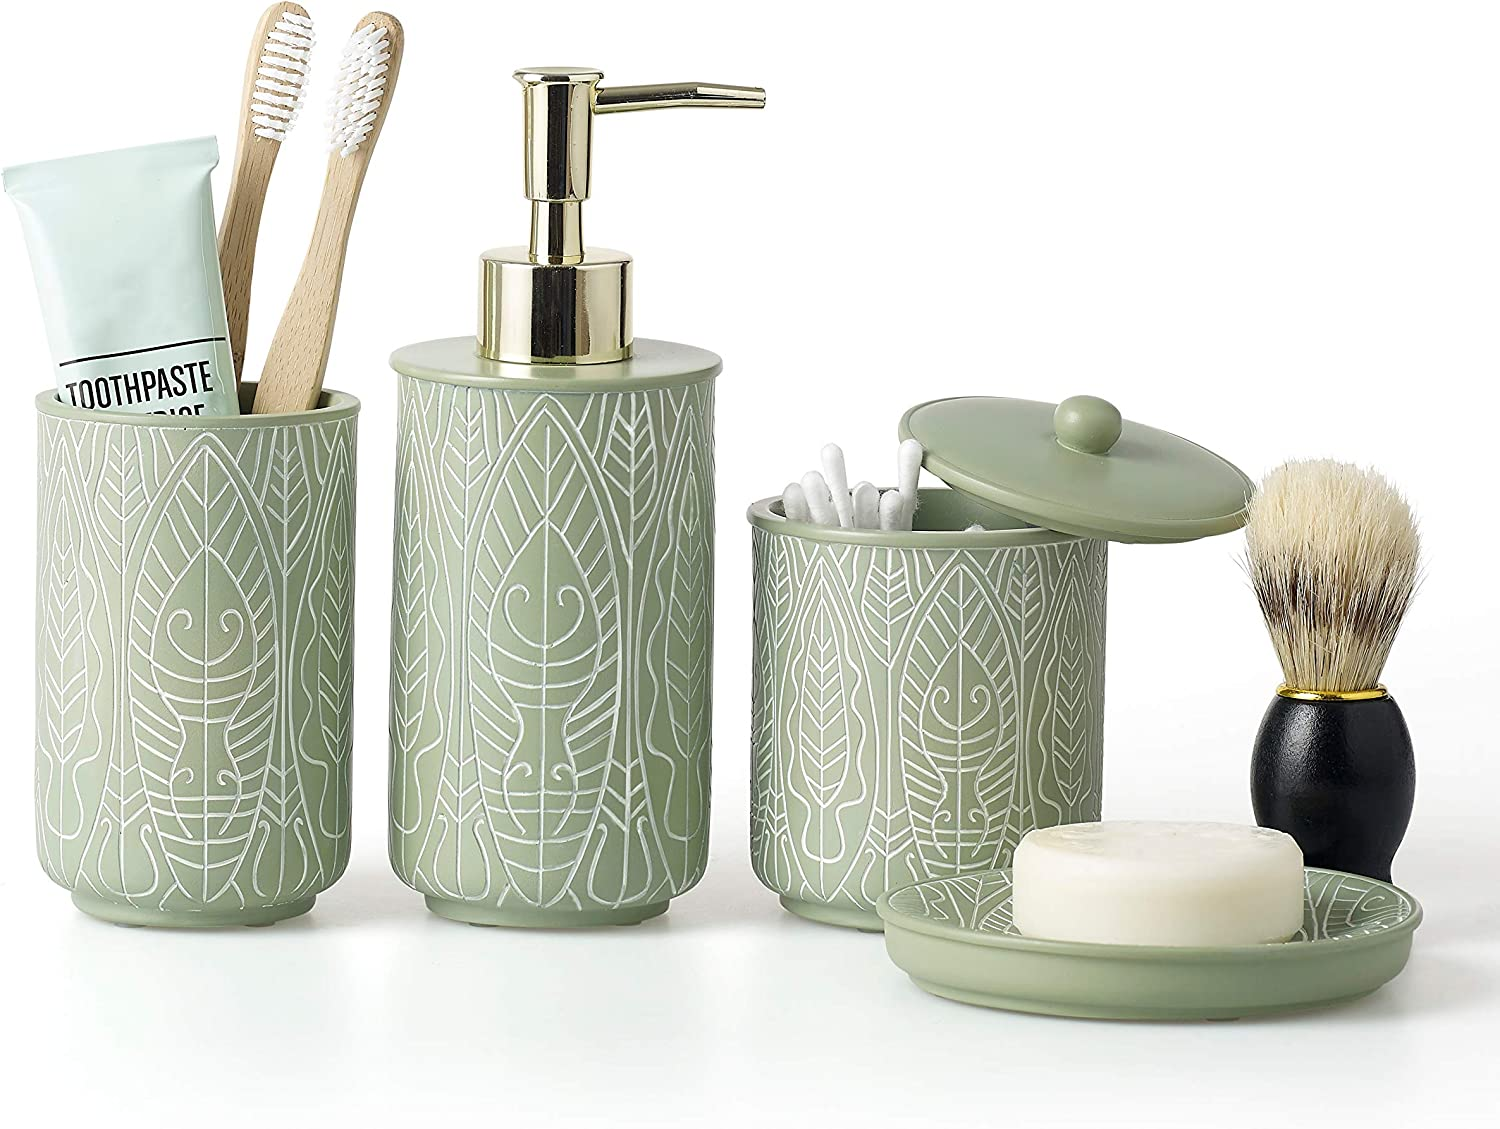 VIRTUNE Premium Pastel Green Bathroom Accessory Set. Home and Apartment Essentials Including Hand Pump Soap Dispenser, Soap Dish, Toothbrush Holder, and Tumbler Cup. Modern Bathroom Decor